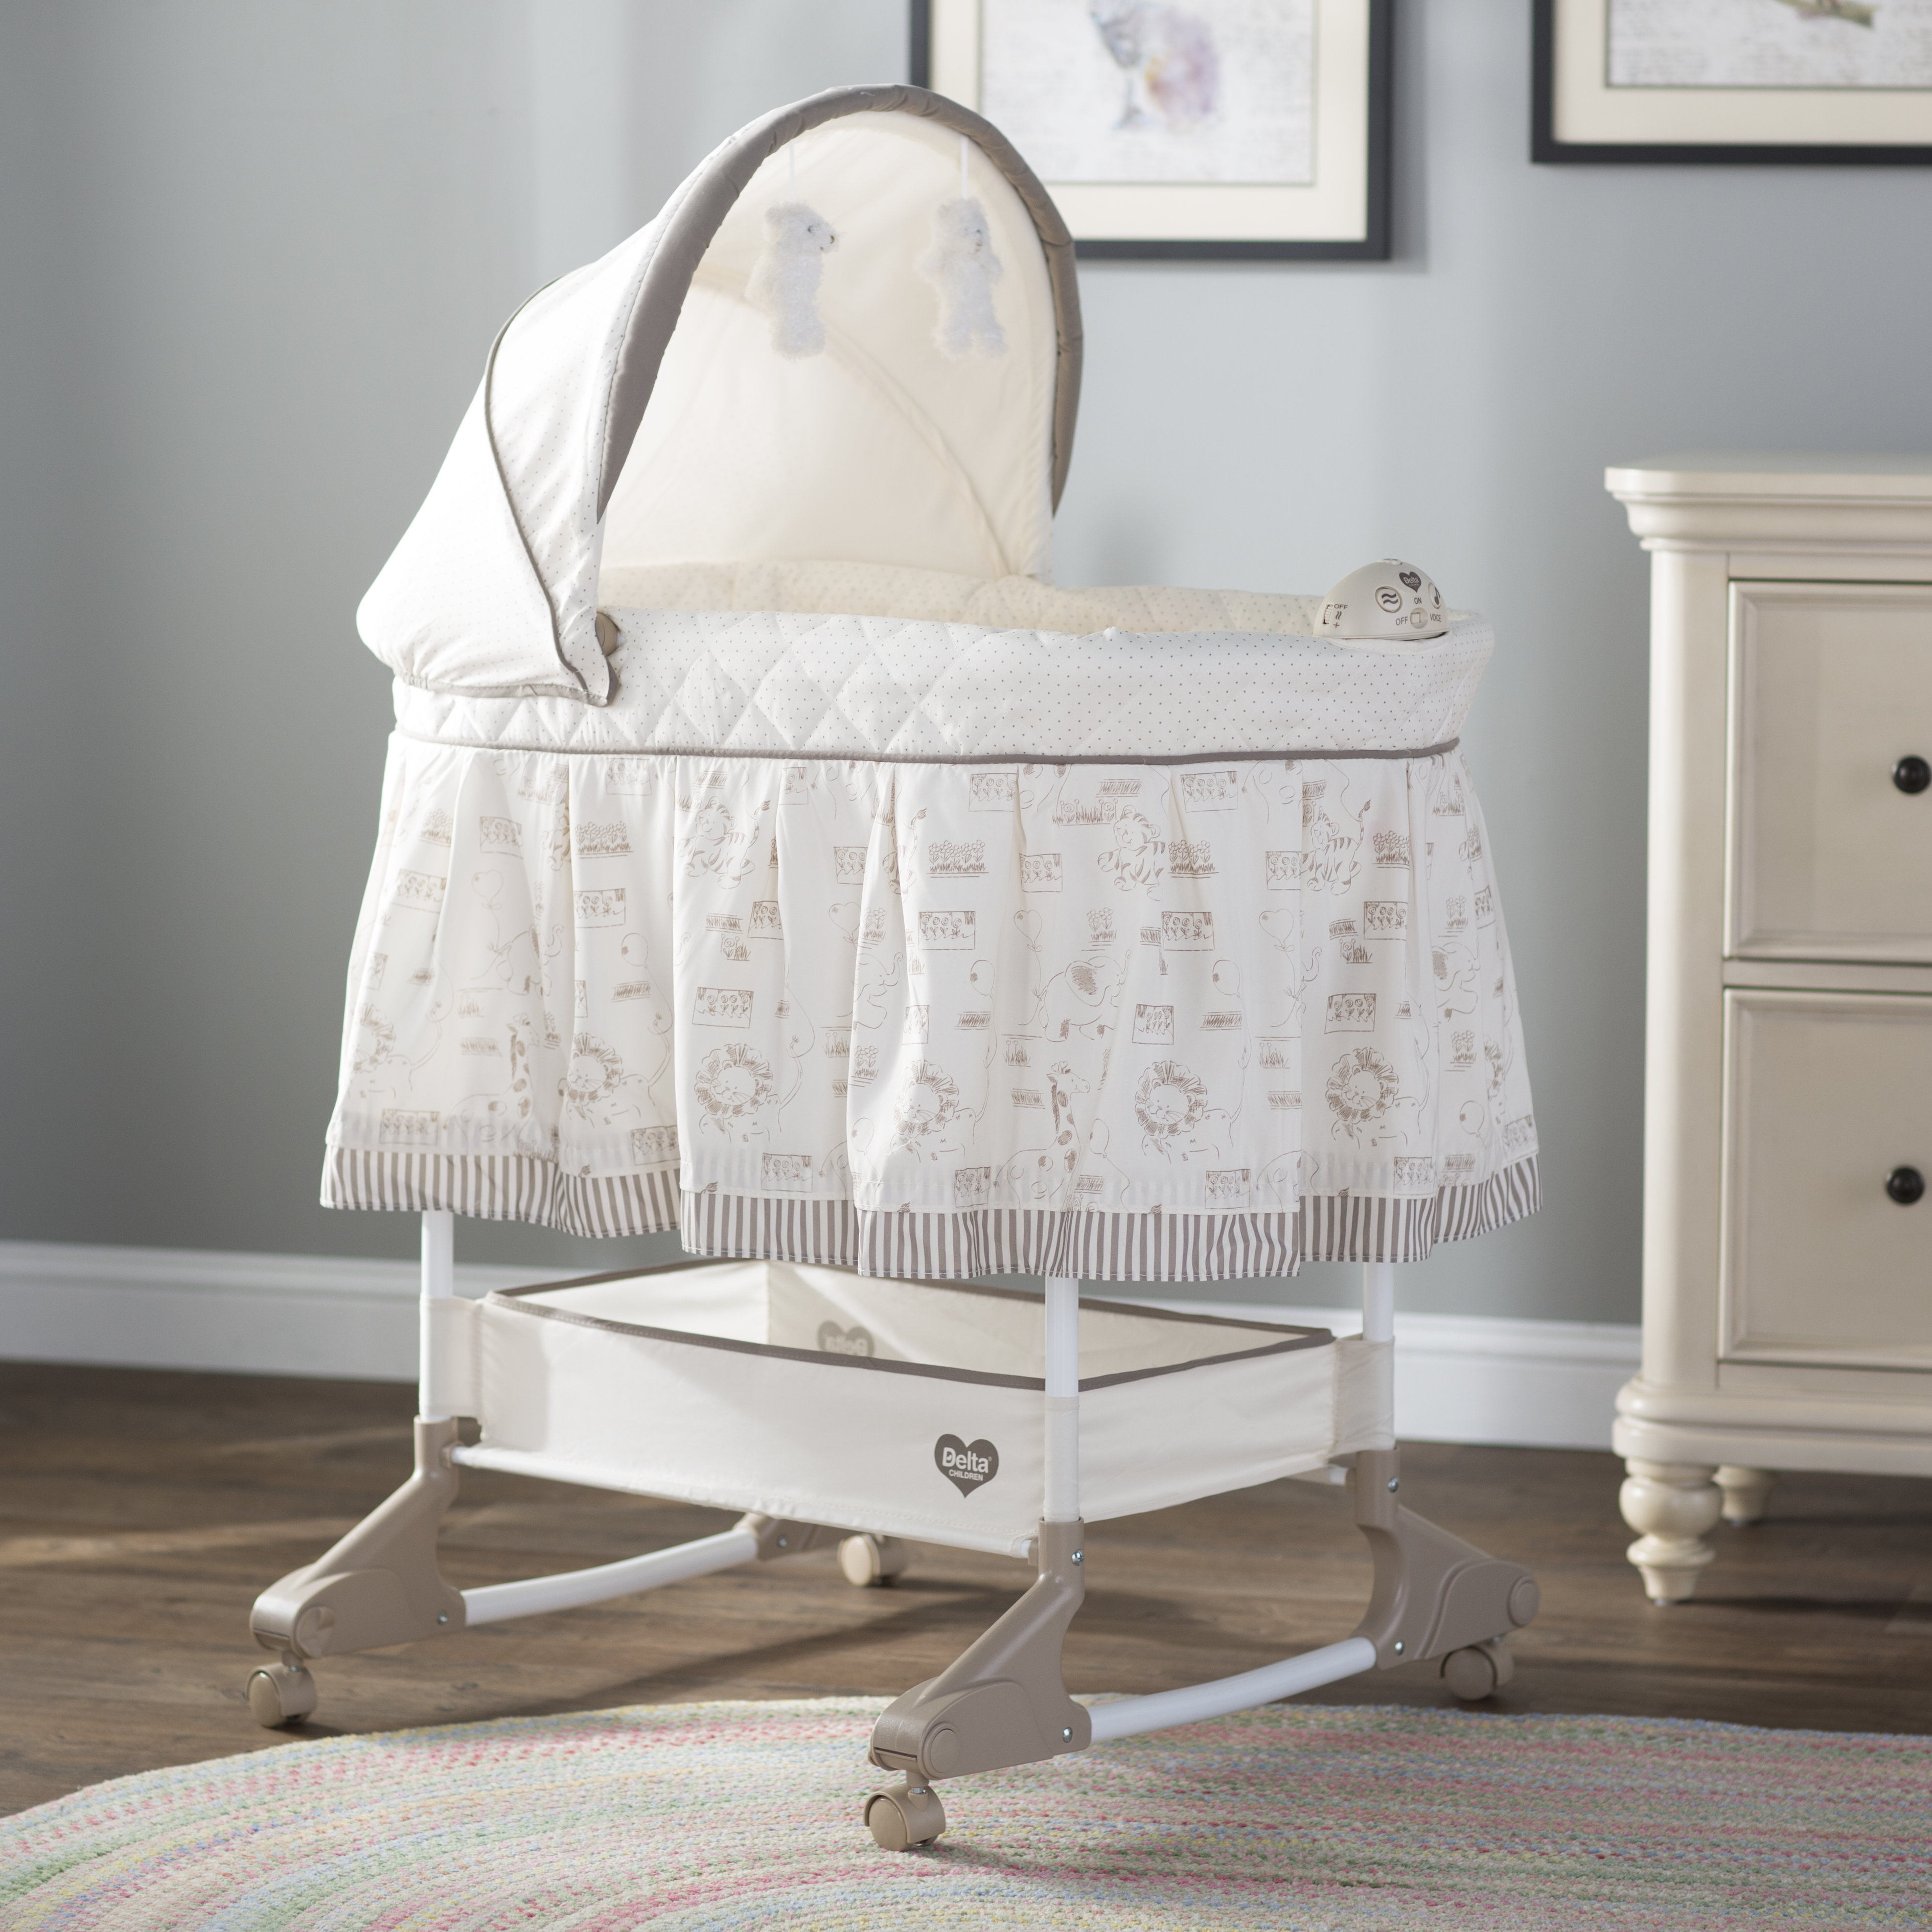 Viv + Rae Rosthern Rocking Bassinet & Reviews | Wayfair With Bailey Mist Track Arm Skirted Swivel Gliders (View 21 of 25)